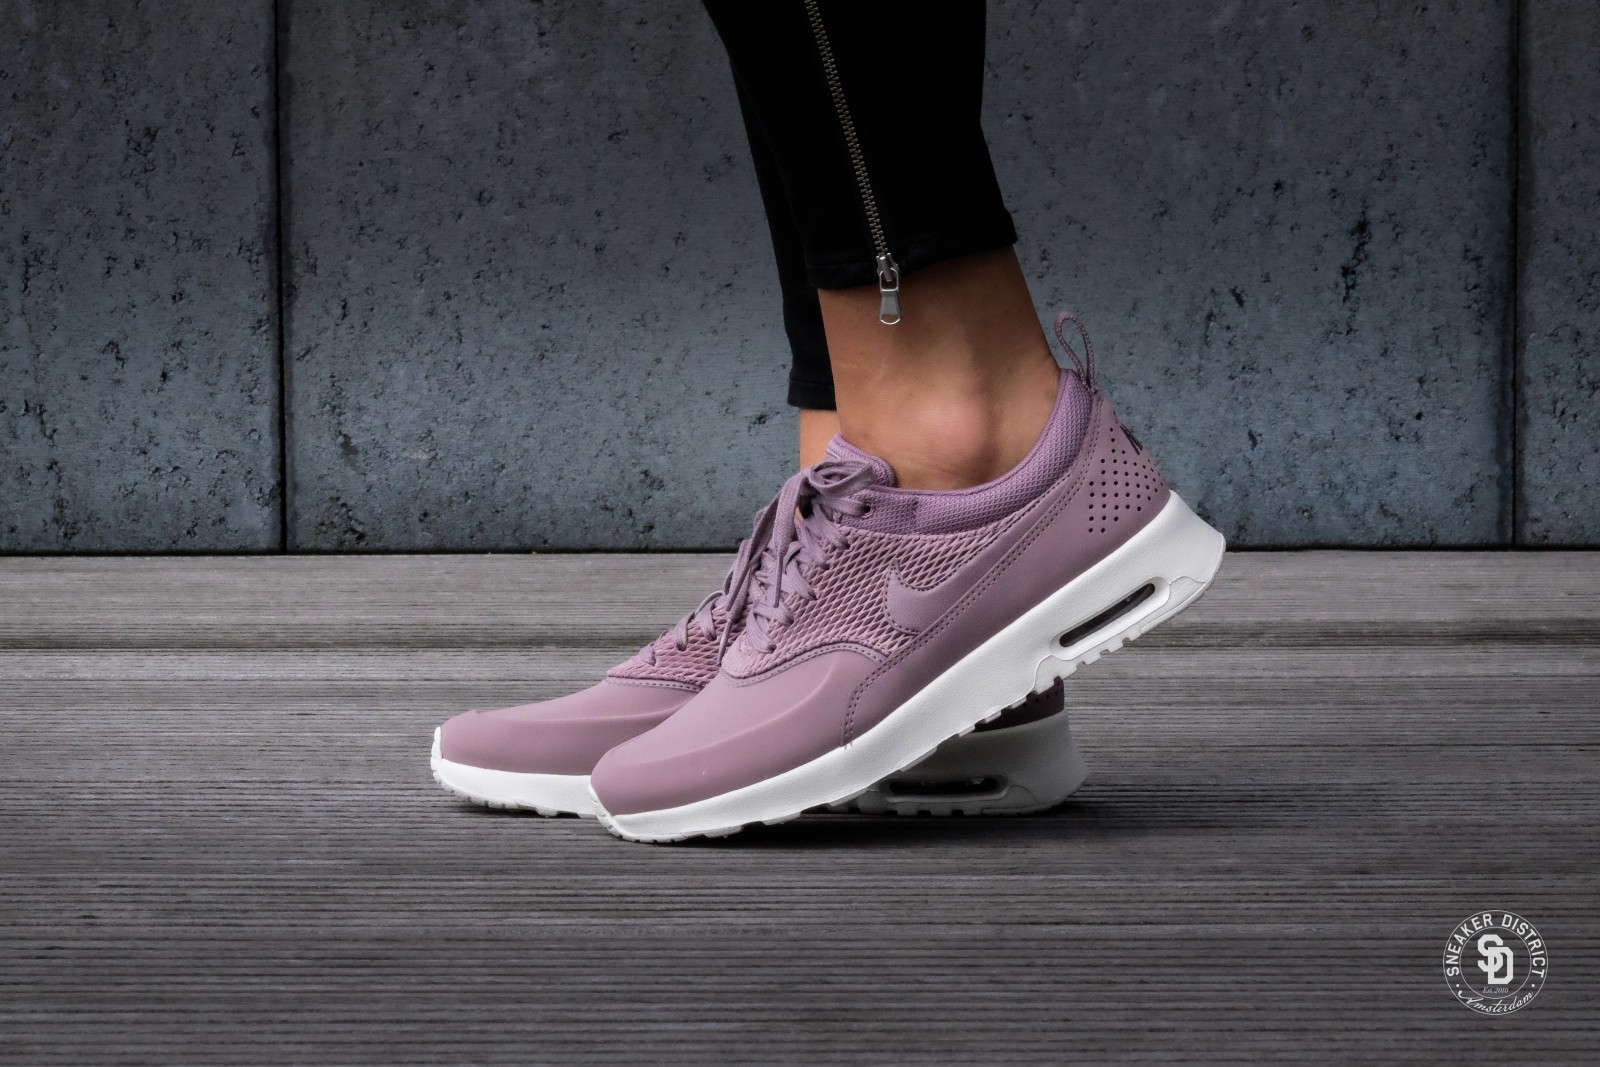 nike wmns air max thea prm,Shoes NIKE Wmns Nike Air Max Thea